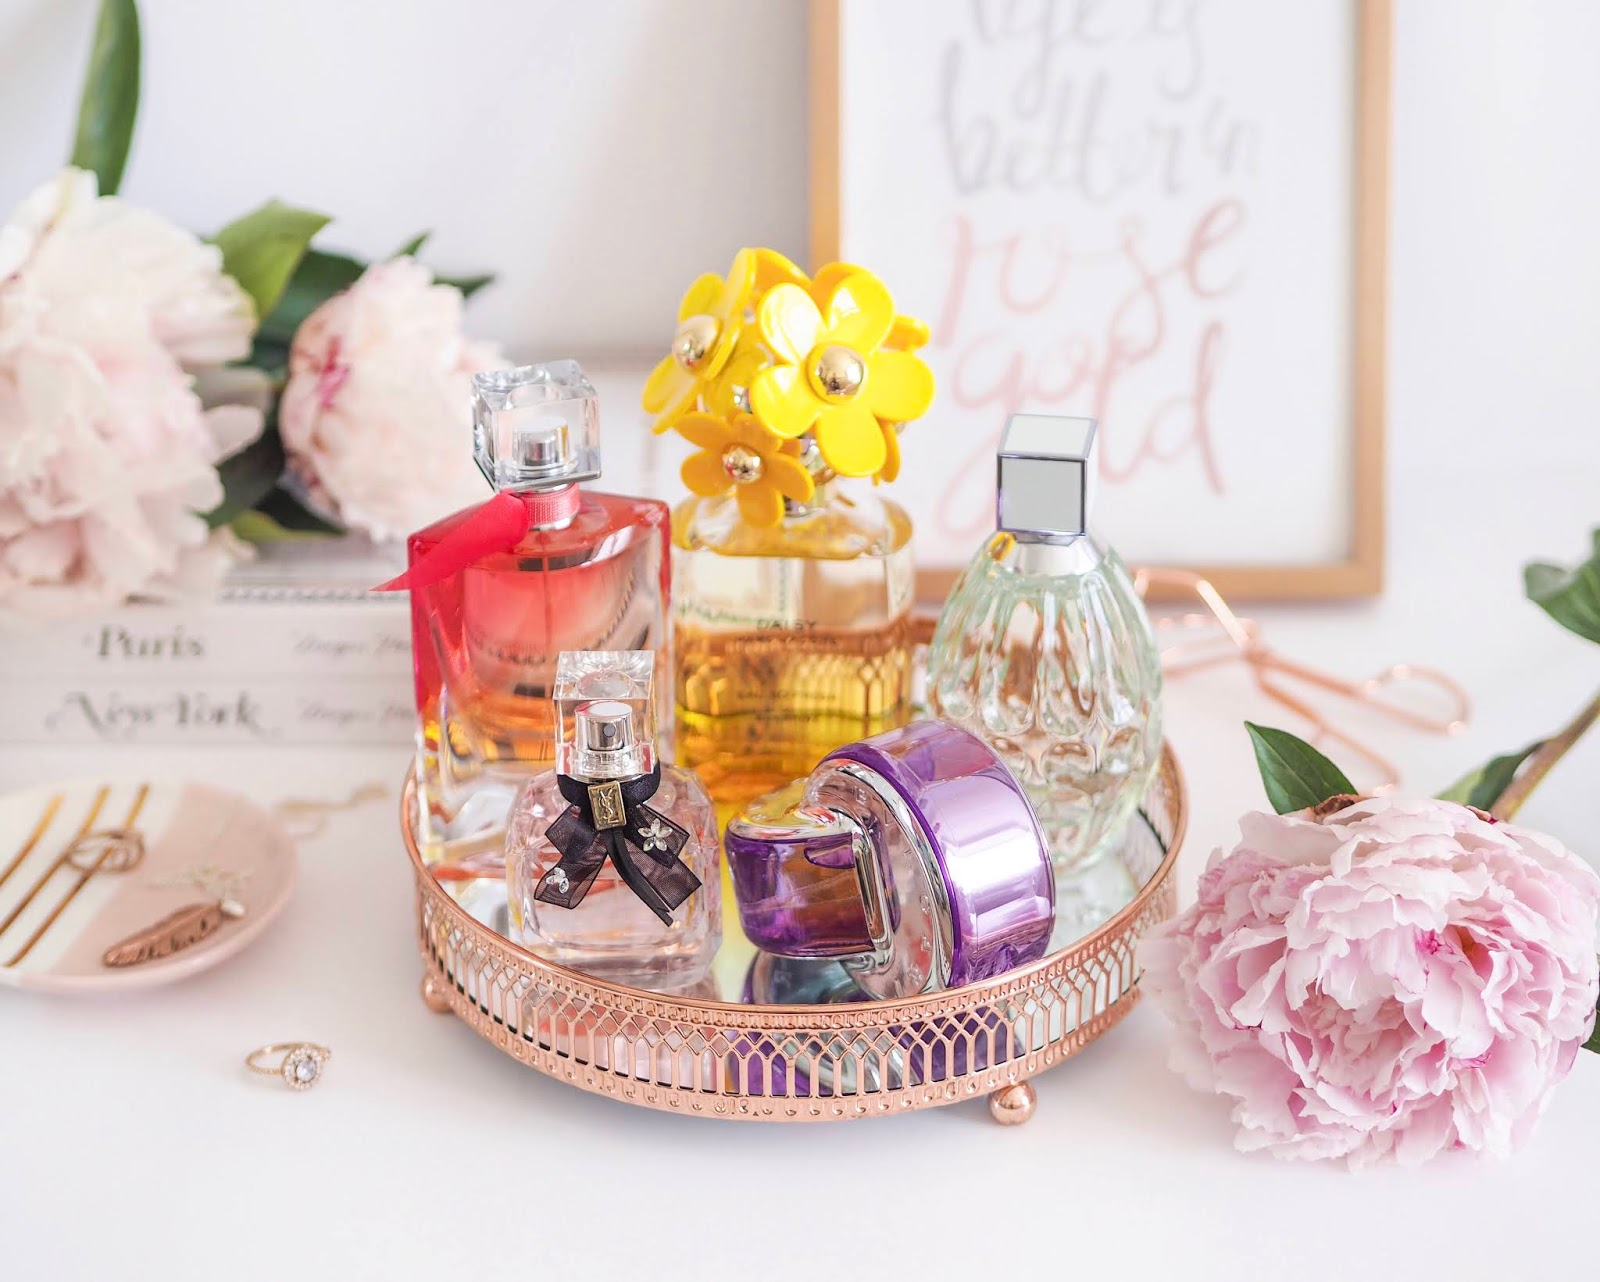 Summer Fragrance Edit: 5 Scents For Summer, Fragrance Direct, Katie Kirk Loves, UK Blogger, Beauty Blogger, Summer Fragrances, Summer Perfumes, Top 5 Fragrances